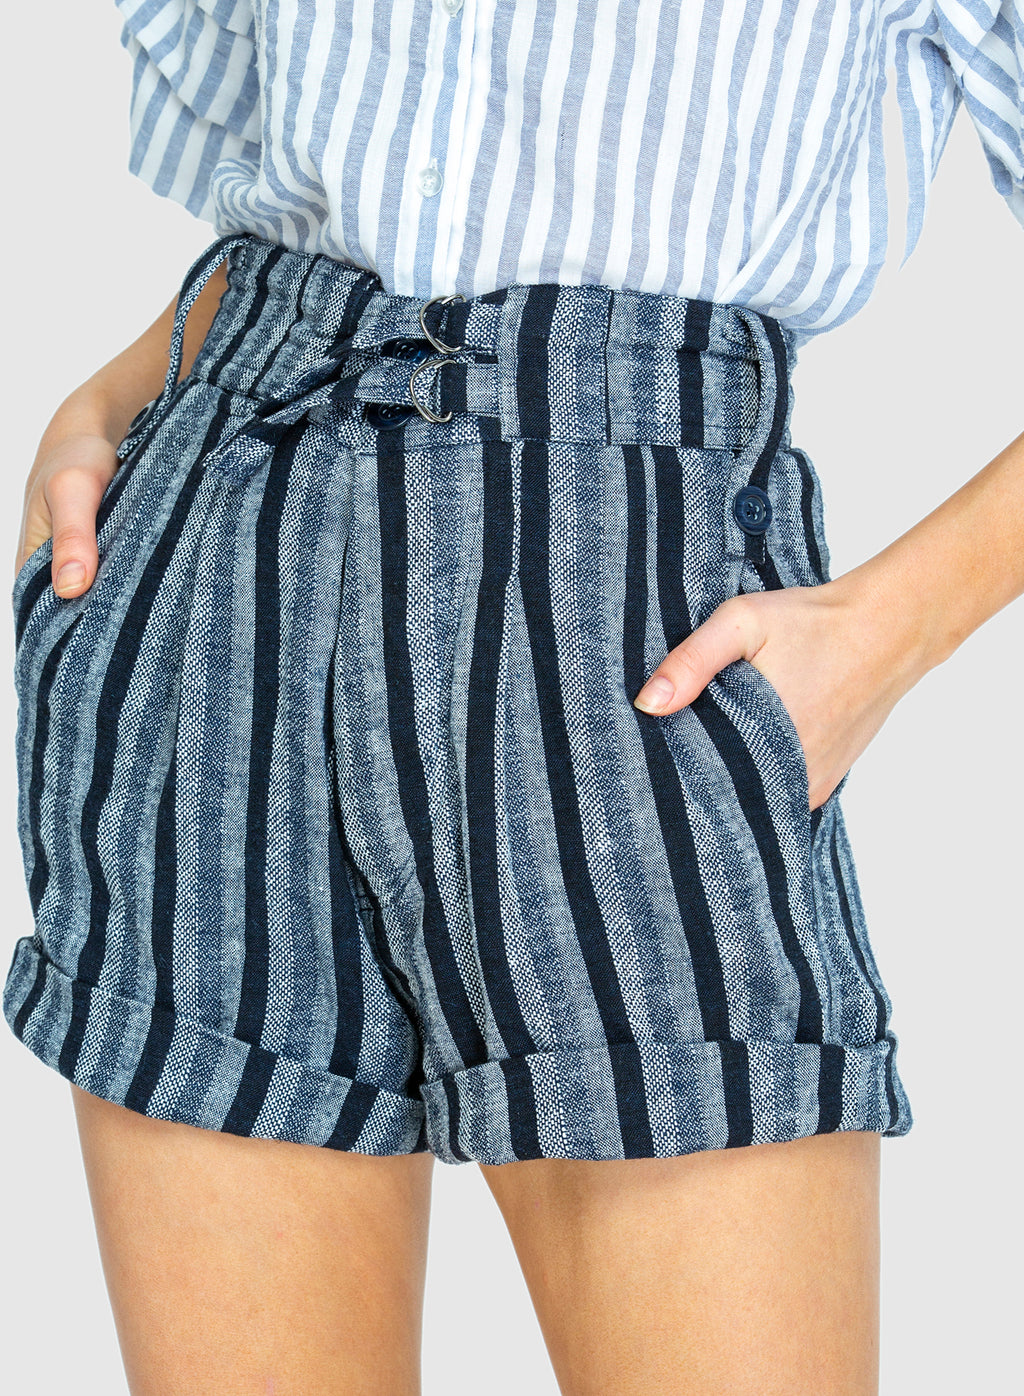 THE SLIDE SHORT  in Woven Linen Blue Stripe PRE-ORDER NOW